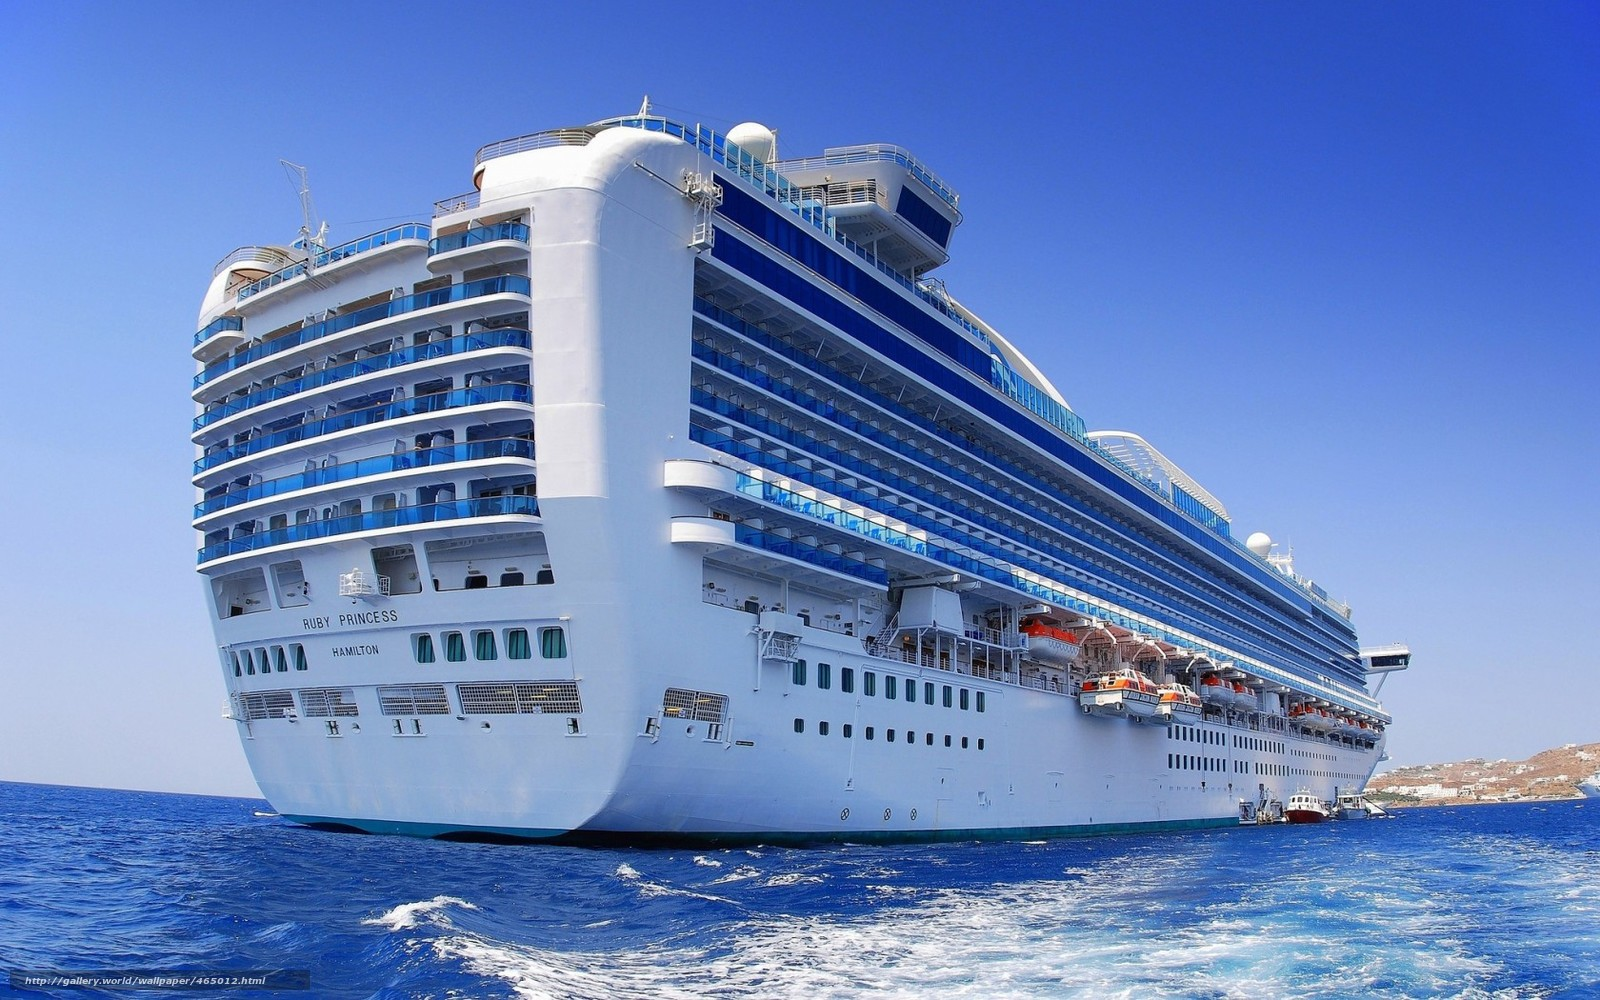 Download wallpaper ship Cruise Ship ocean desktop wallpaper in 1600x1000